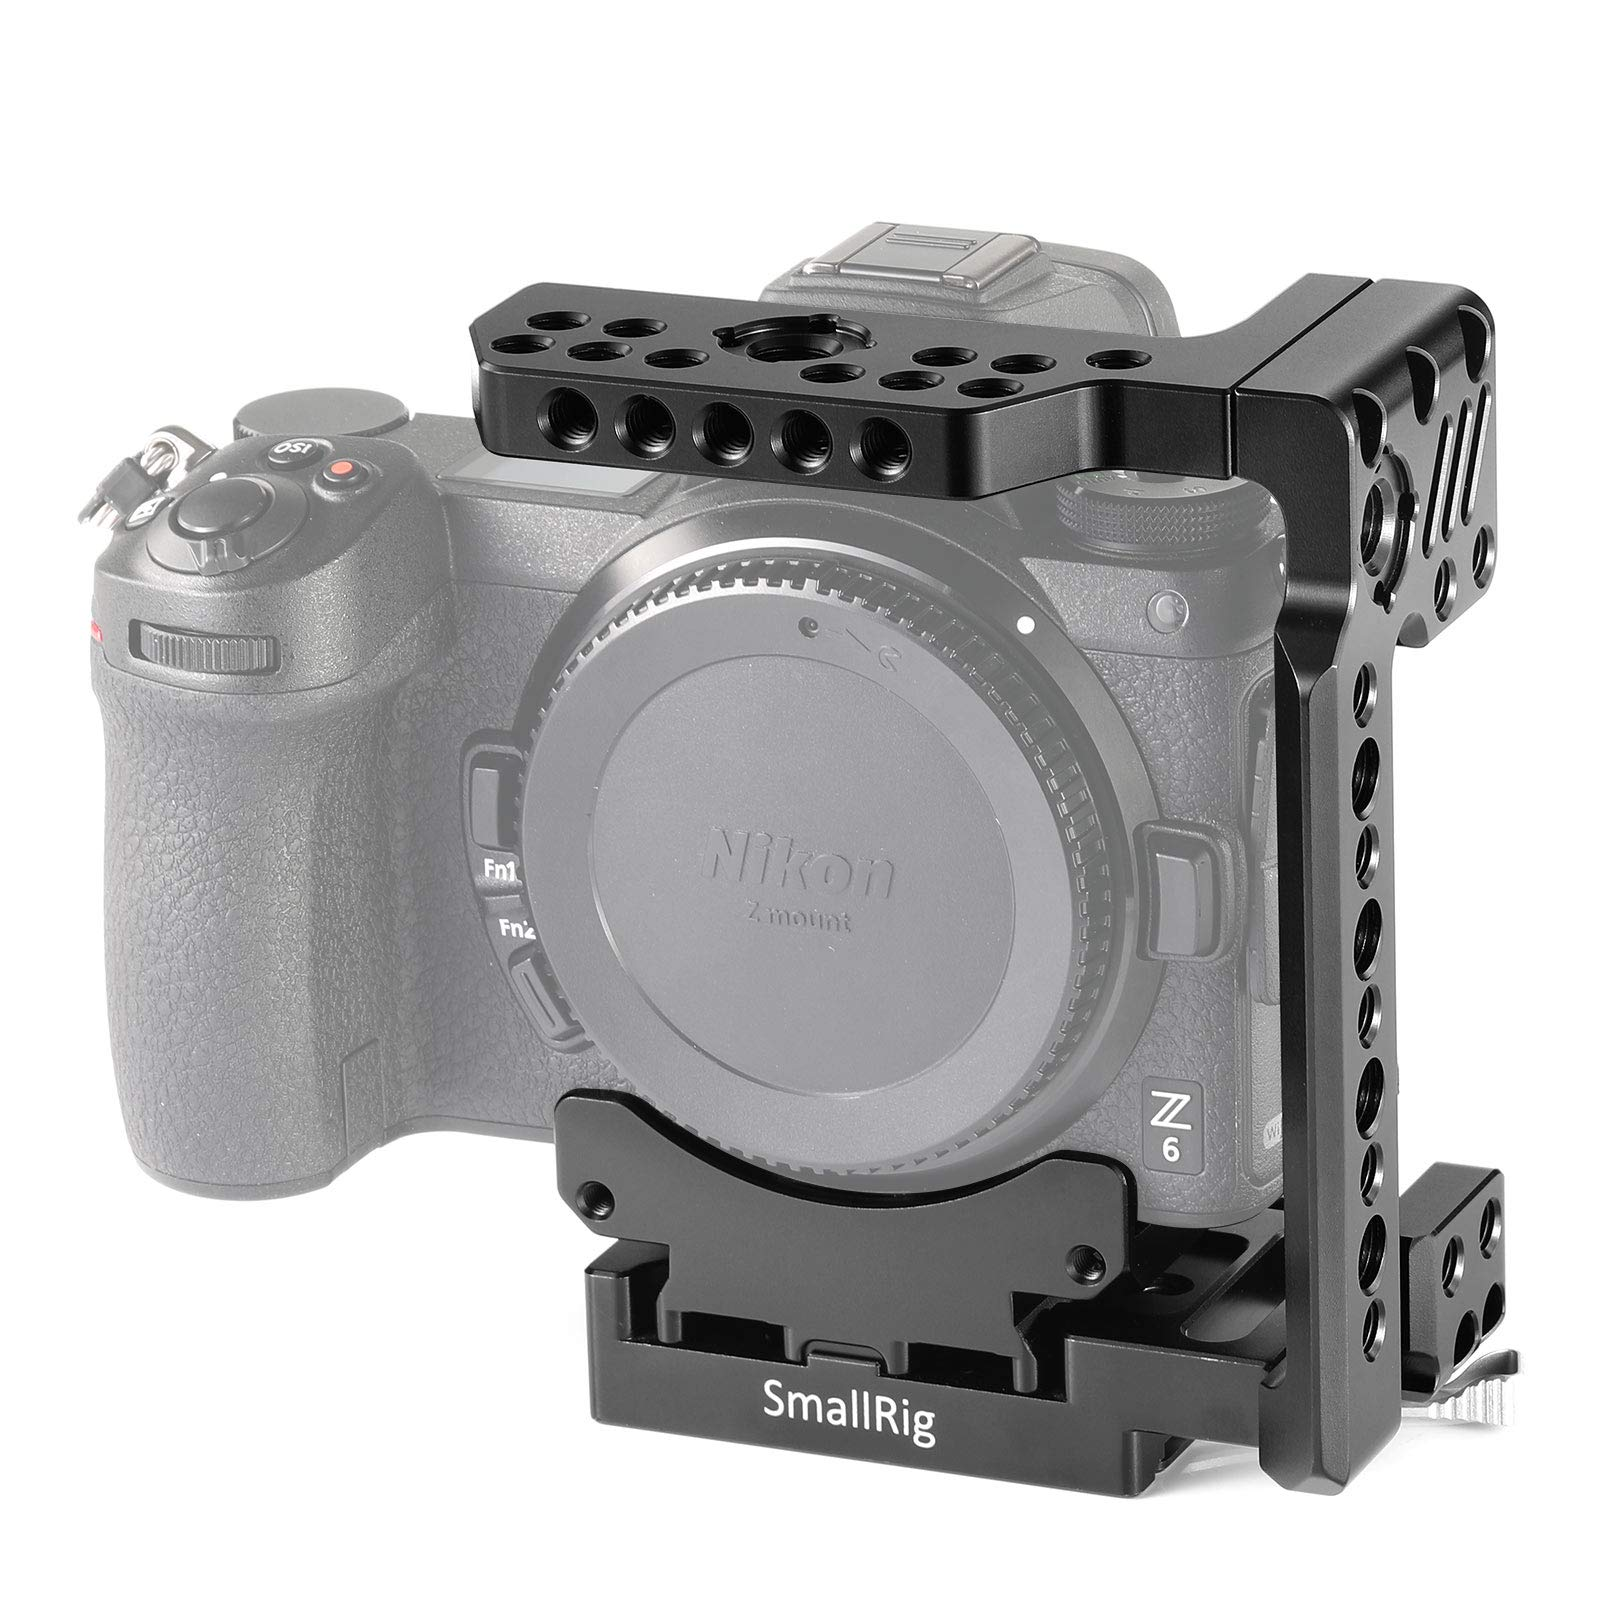 Smallrig 2262 Quick Release Half Cage For Nikon Z6 And Z7..